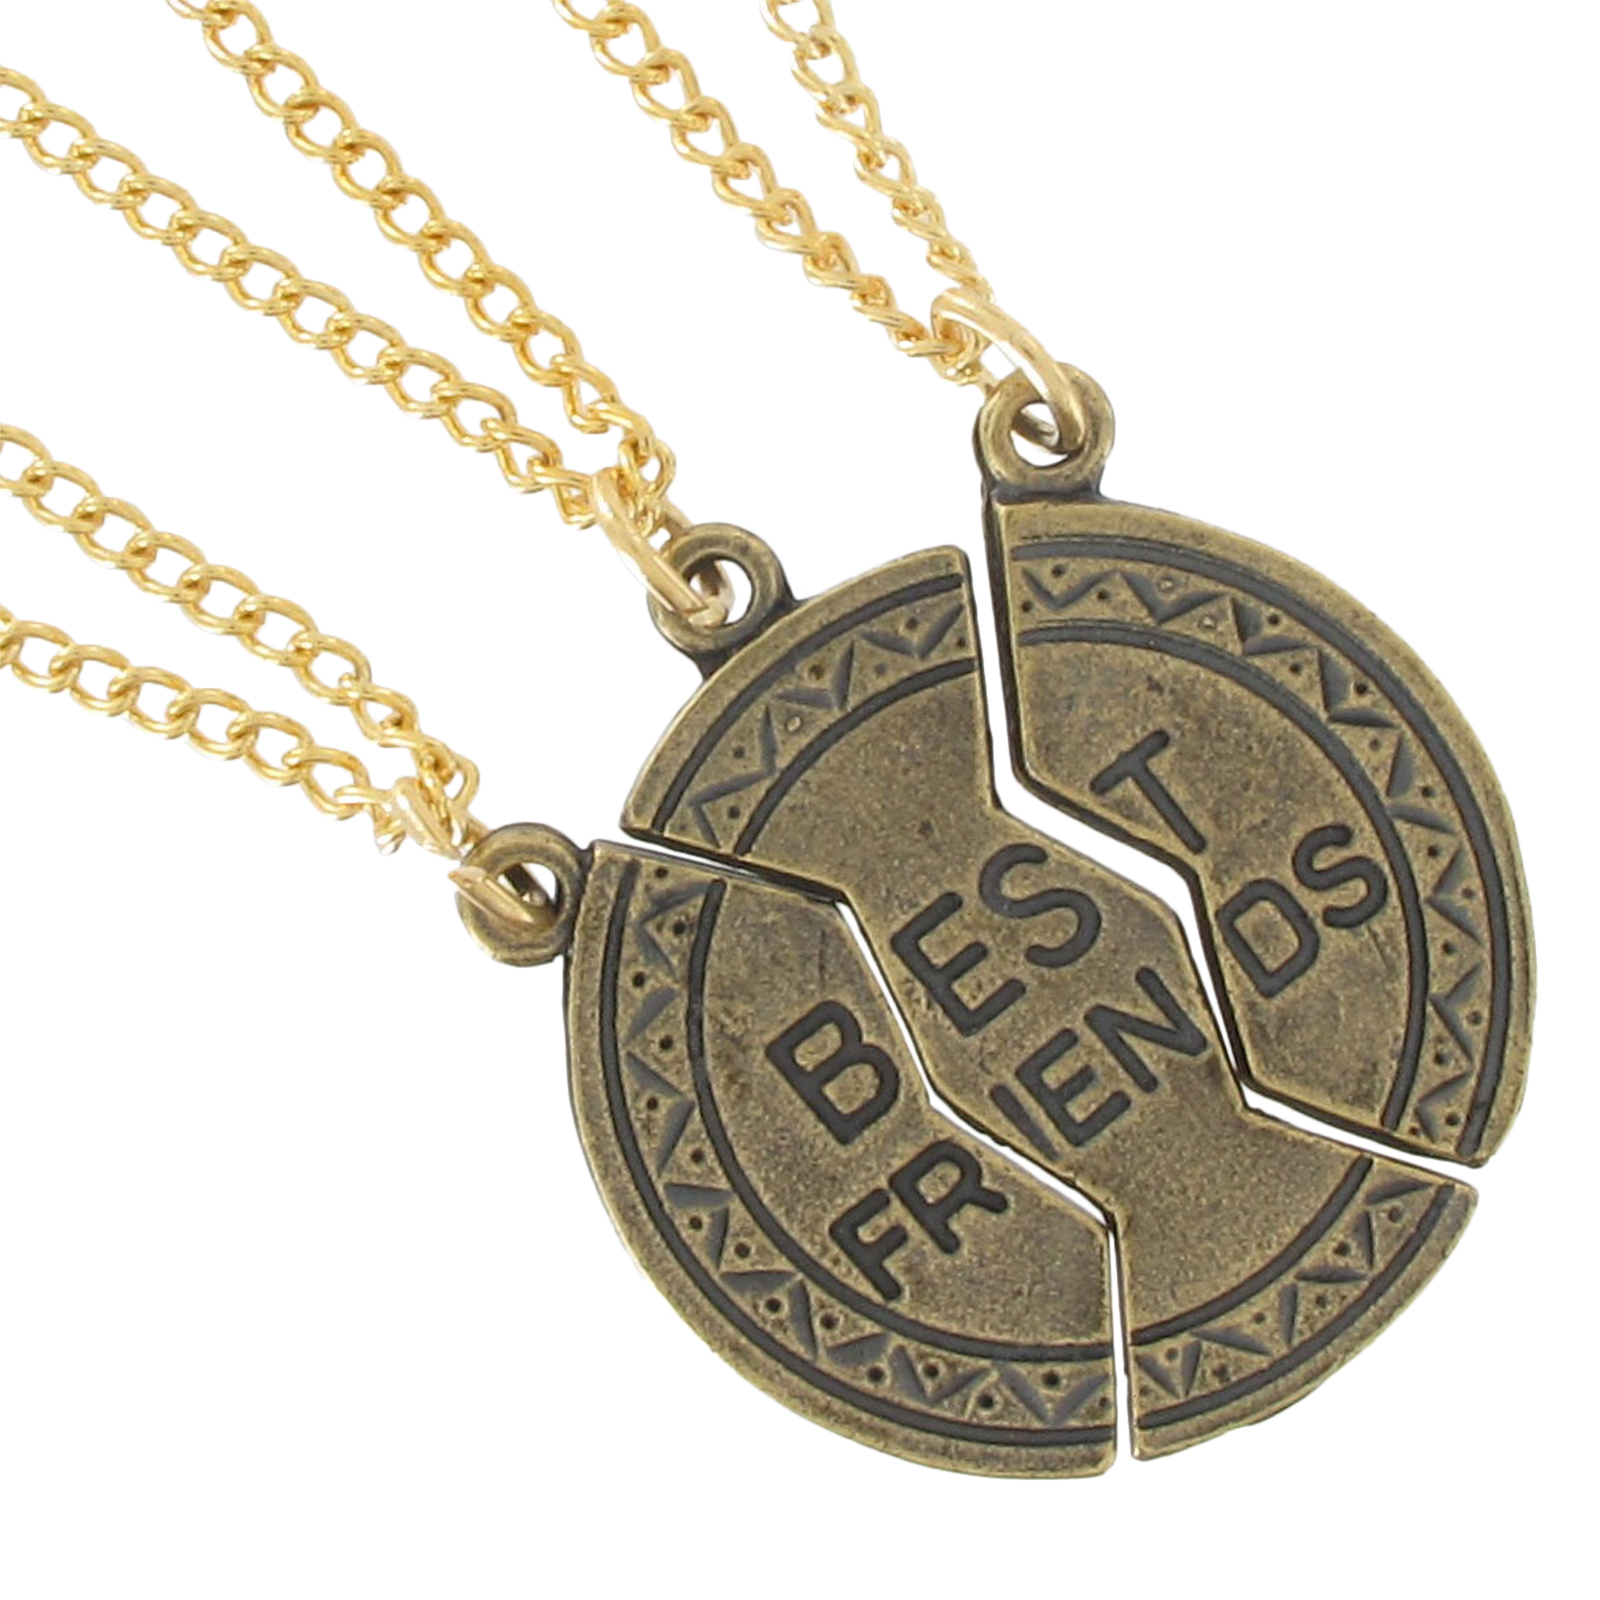 Bestfriends Necklace 2372 11 Jewelry Gifts And Gift